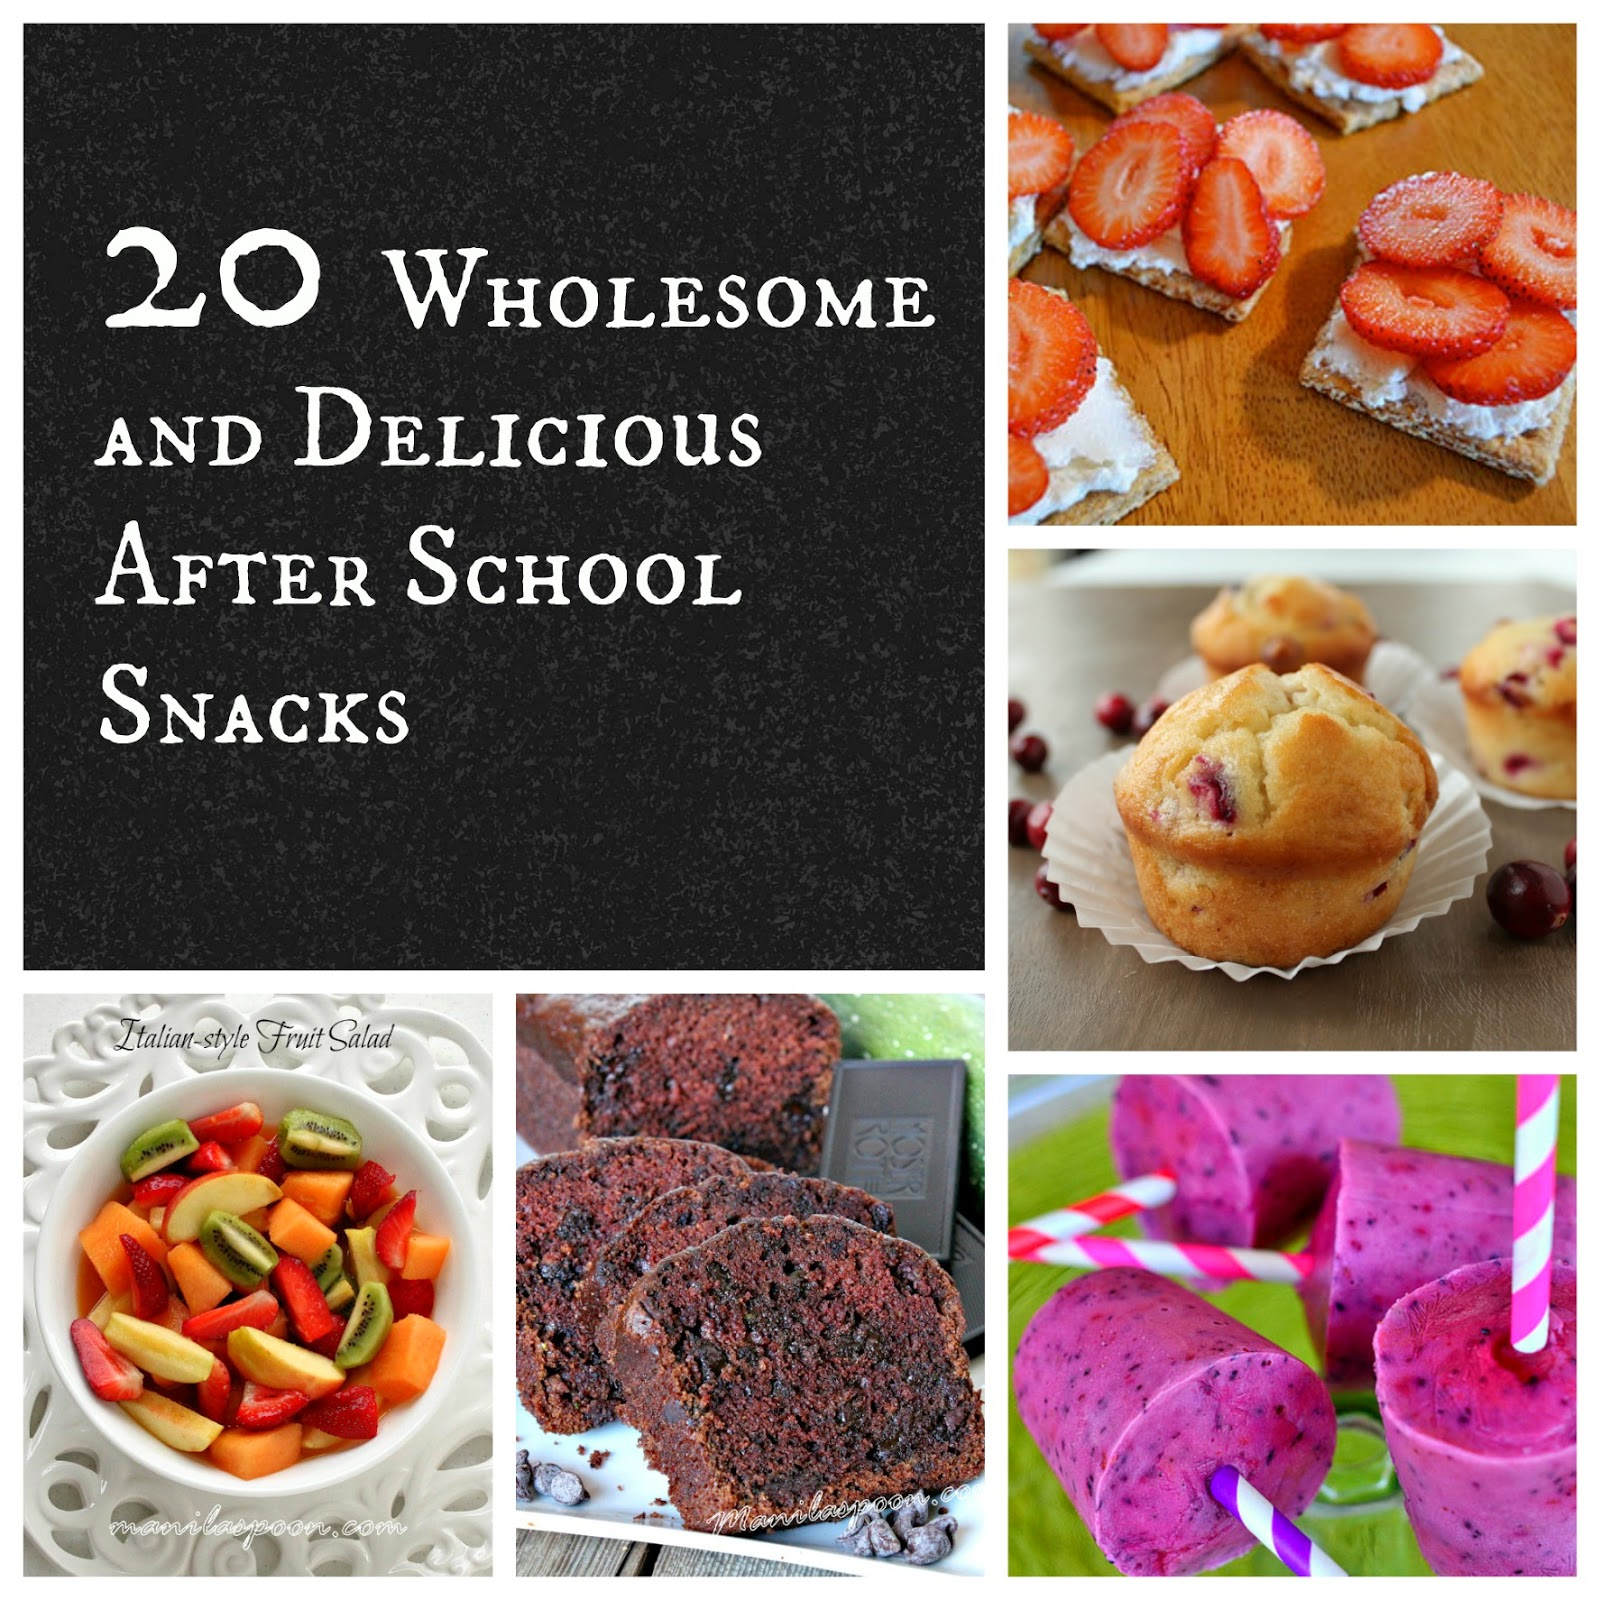 20 Wholesome and Delicious After School Snacks